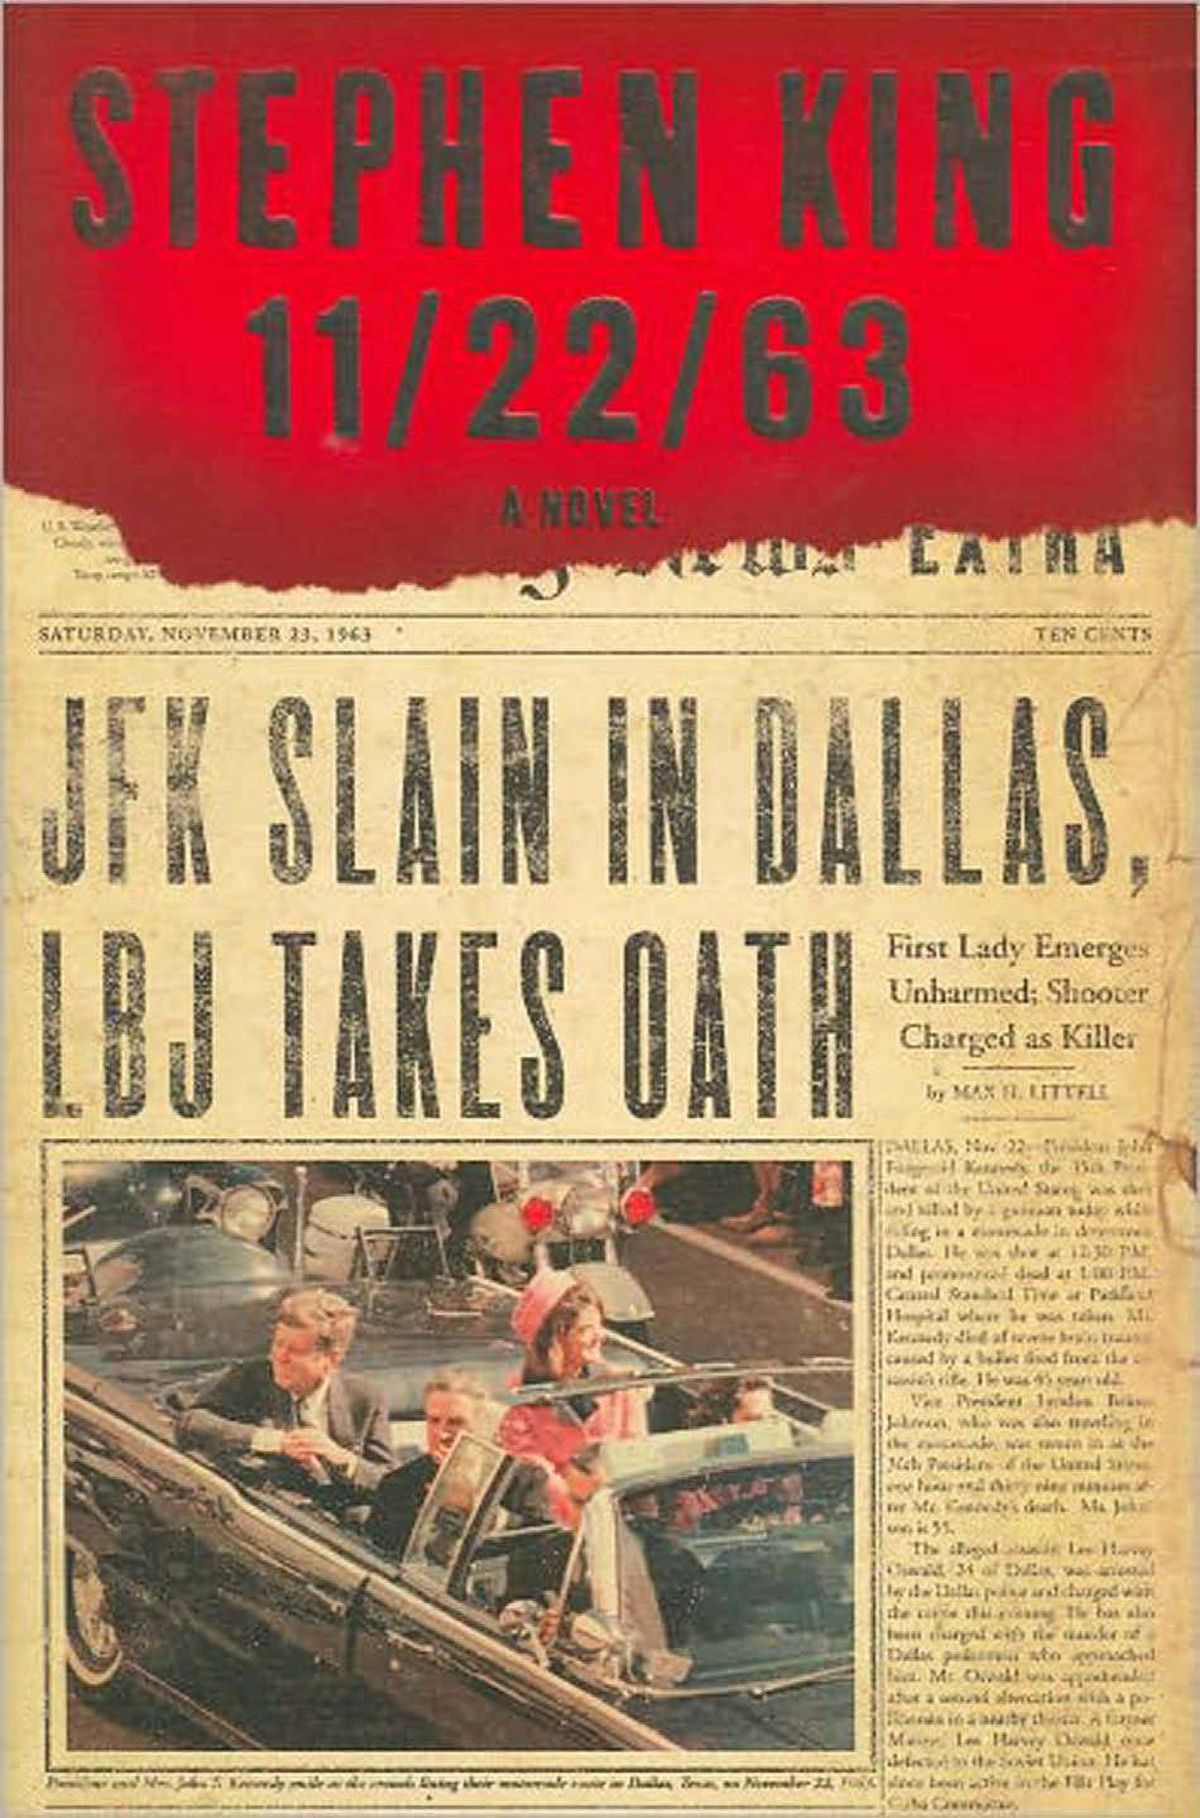 11/22/63 By Stephen King (Scribner) A thrilling, thoughtful, character-centred journey into the American dream. The time portal Jake Epping is shown, in a grotty roadside diner, goes only to 1958. Al, who owns the diner, has spent five years in the past, preparing to stop the assassination of John F. Kennedy. But cancer foiled him, so he enlists Jake to finish the job. – Robert J. Wiersema